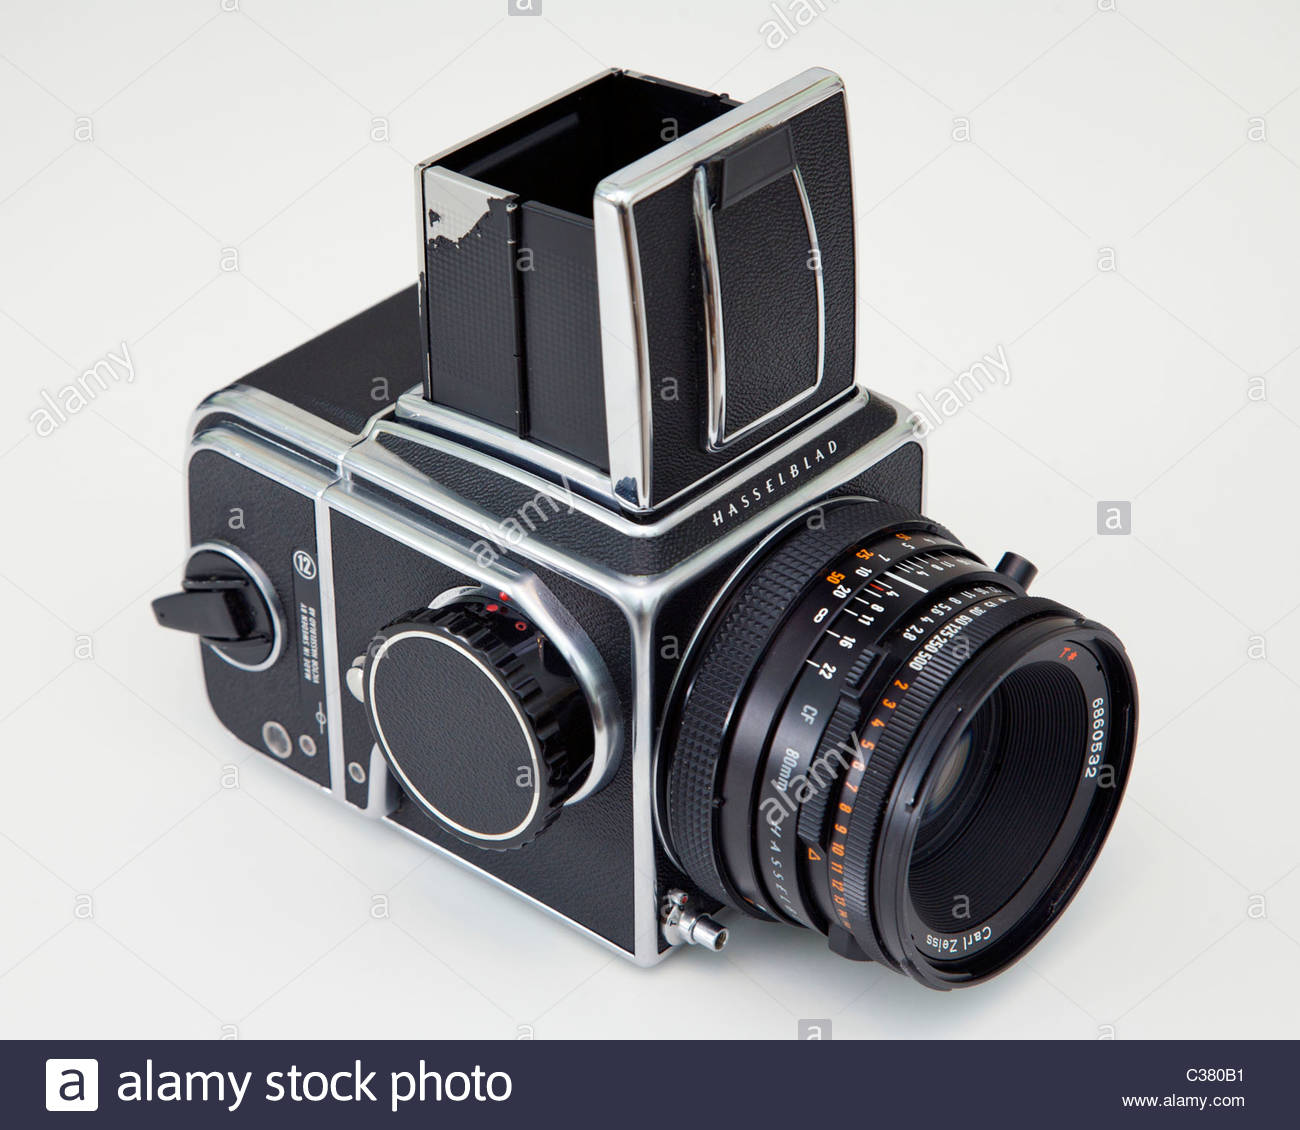 Hasselblad 500cm medium format camera with 50mm Zeiss lens and A-12 film back. - Stock Image